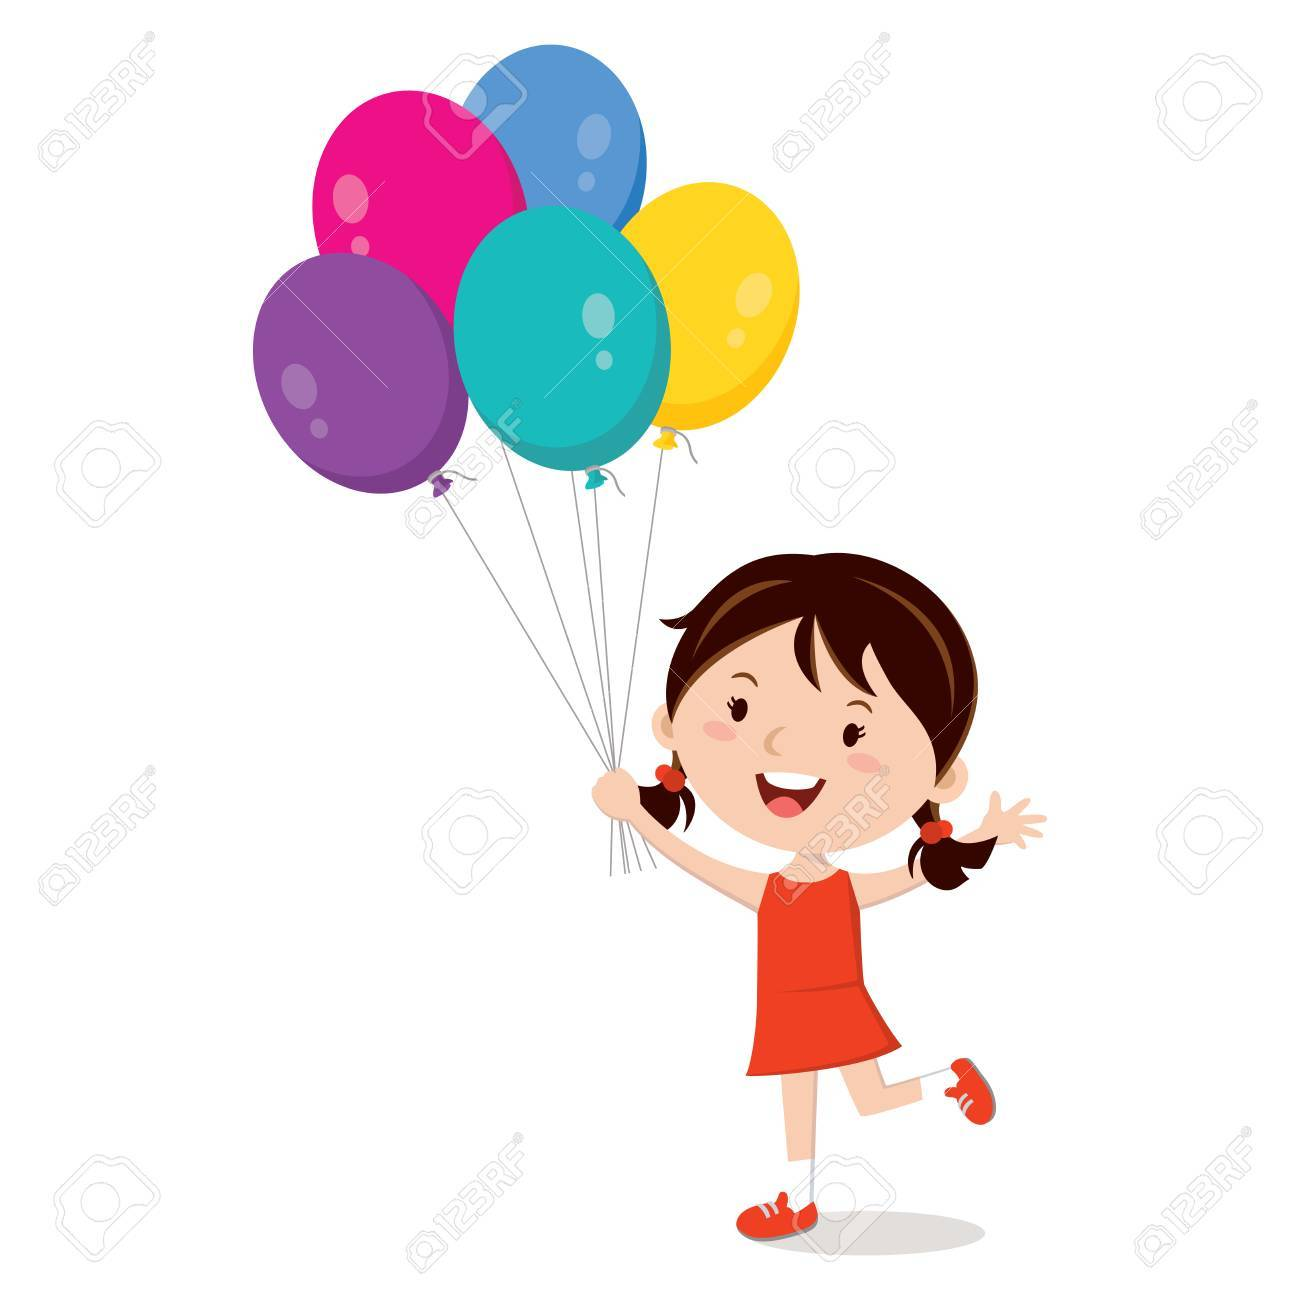 Girl holding balloons isolated. Happy girl gesturing with colorful...